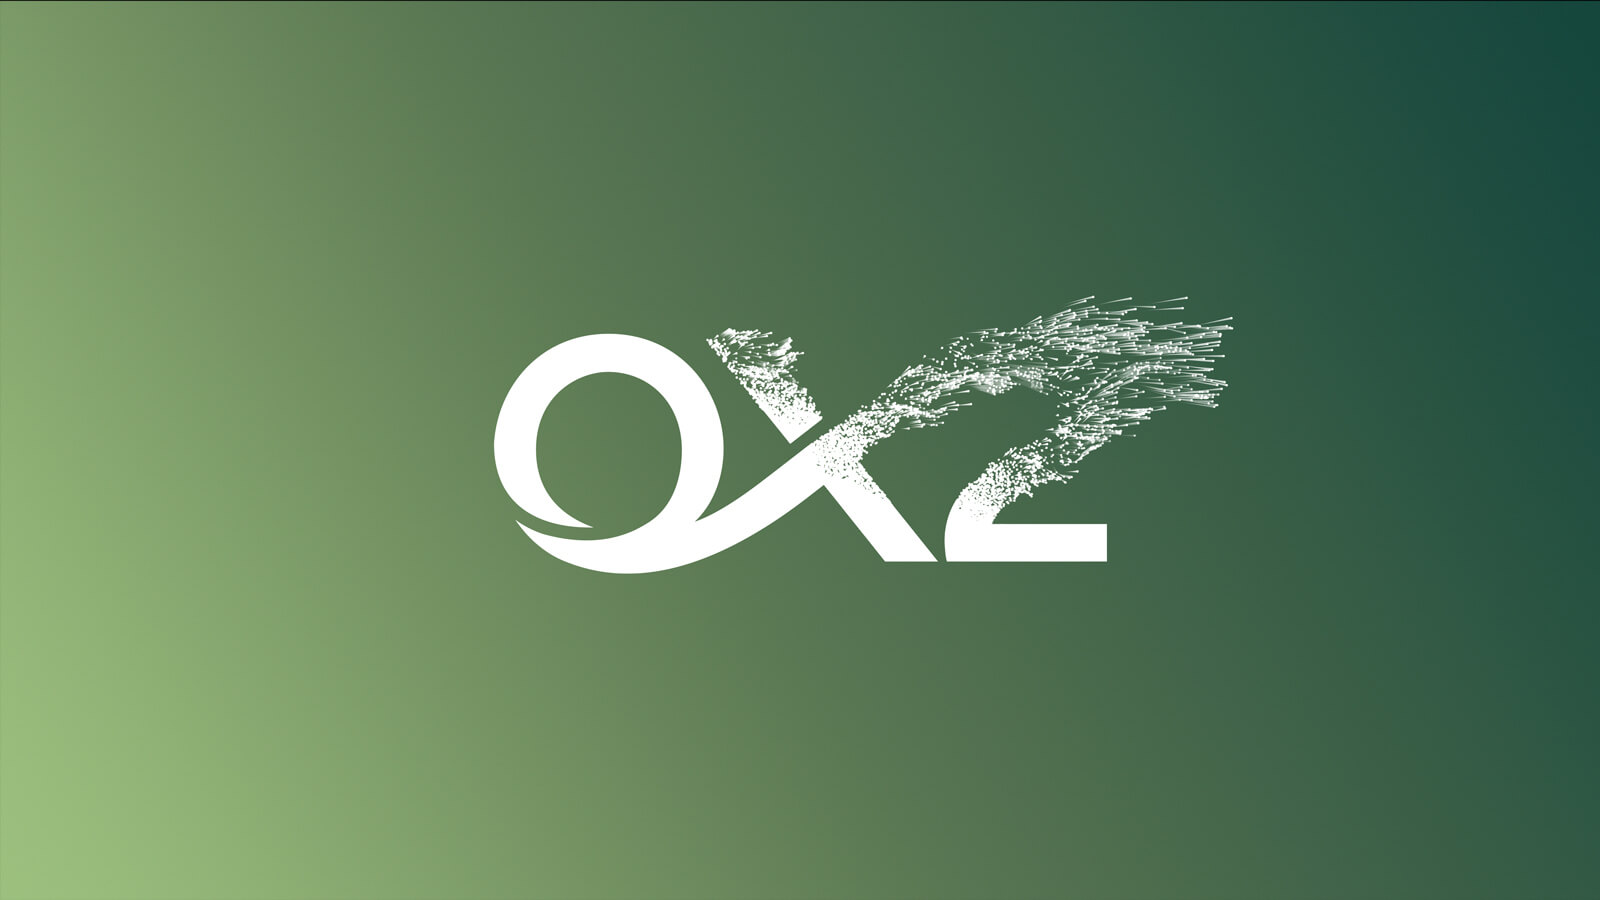 OX2_GraphicElement